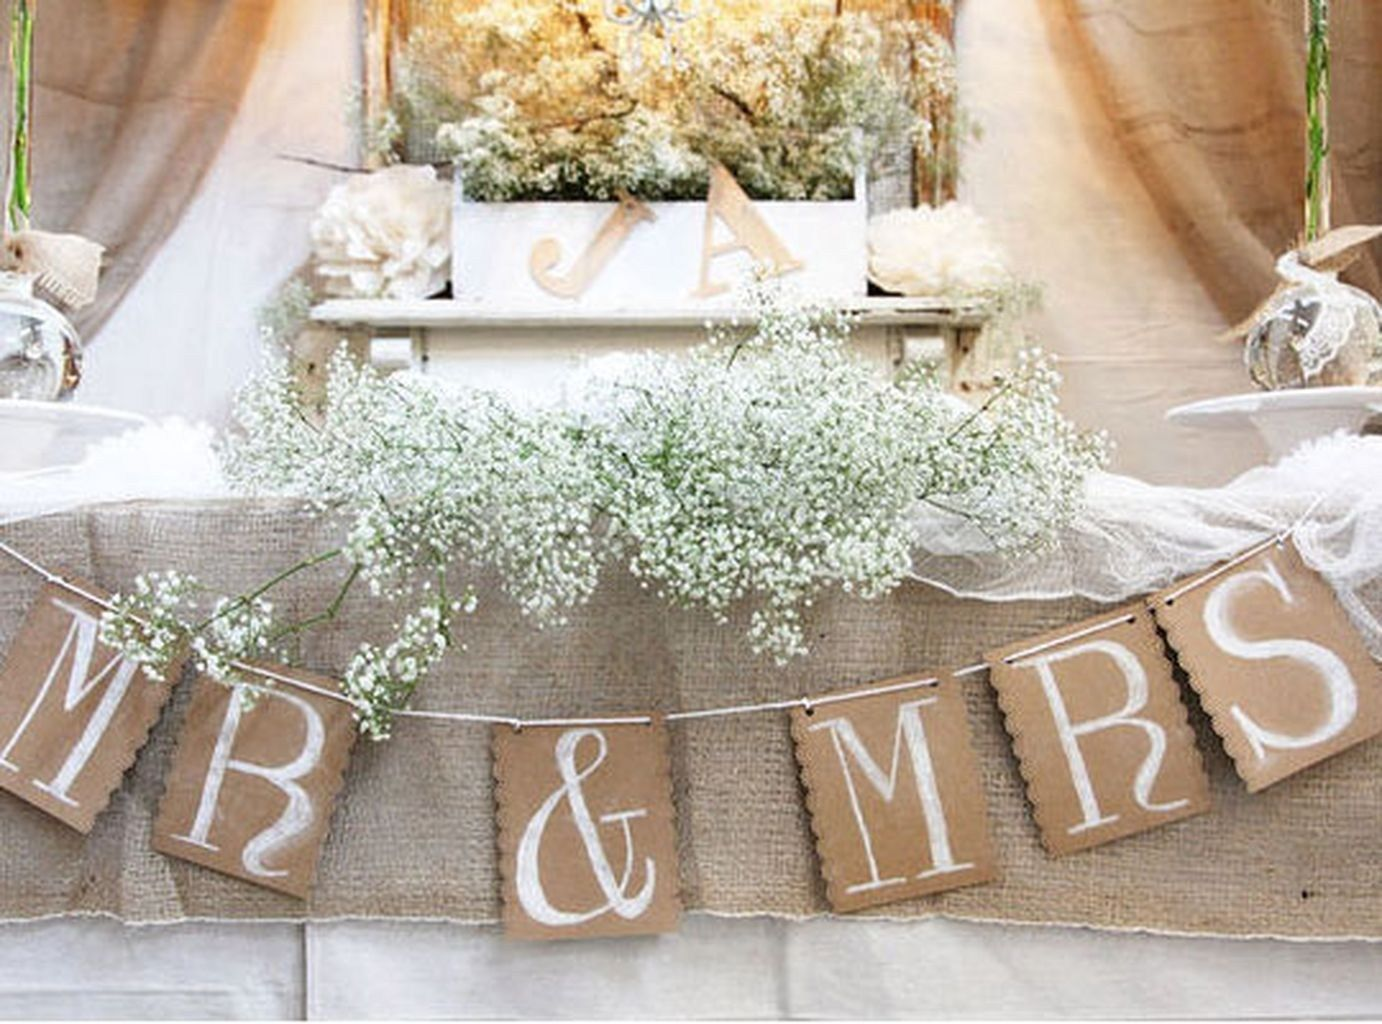 86 Cheap And Inspiring Rustic Wedding Decoration Ideas On A Budget Vis Wed Cheap Wedding Decorations Diy Wedding Decorations Wedding Table Decorations Diy